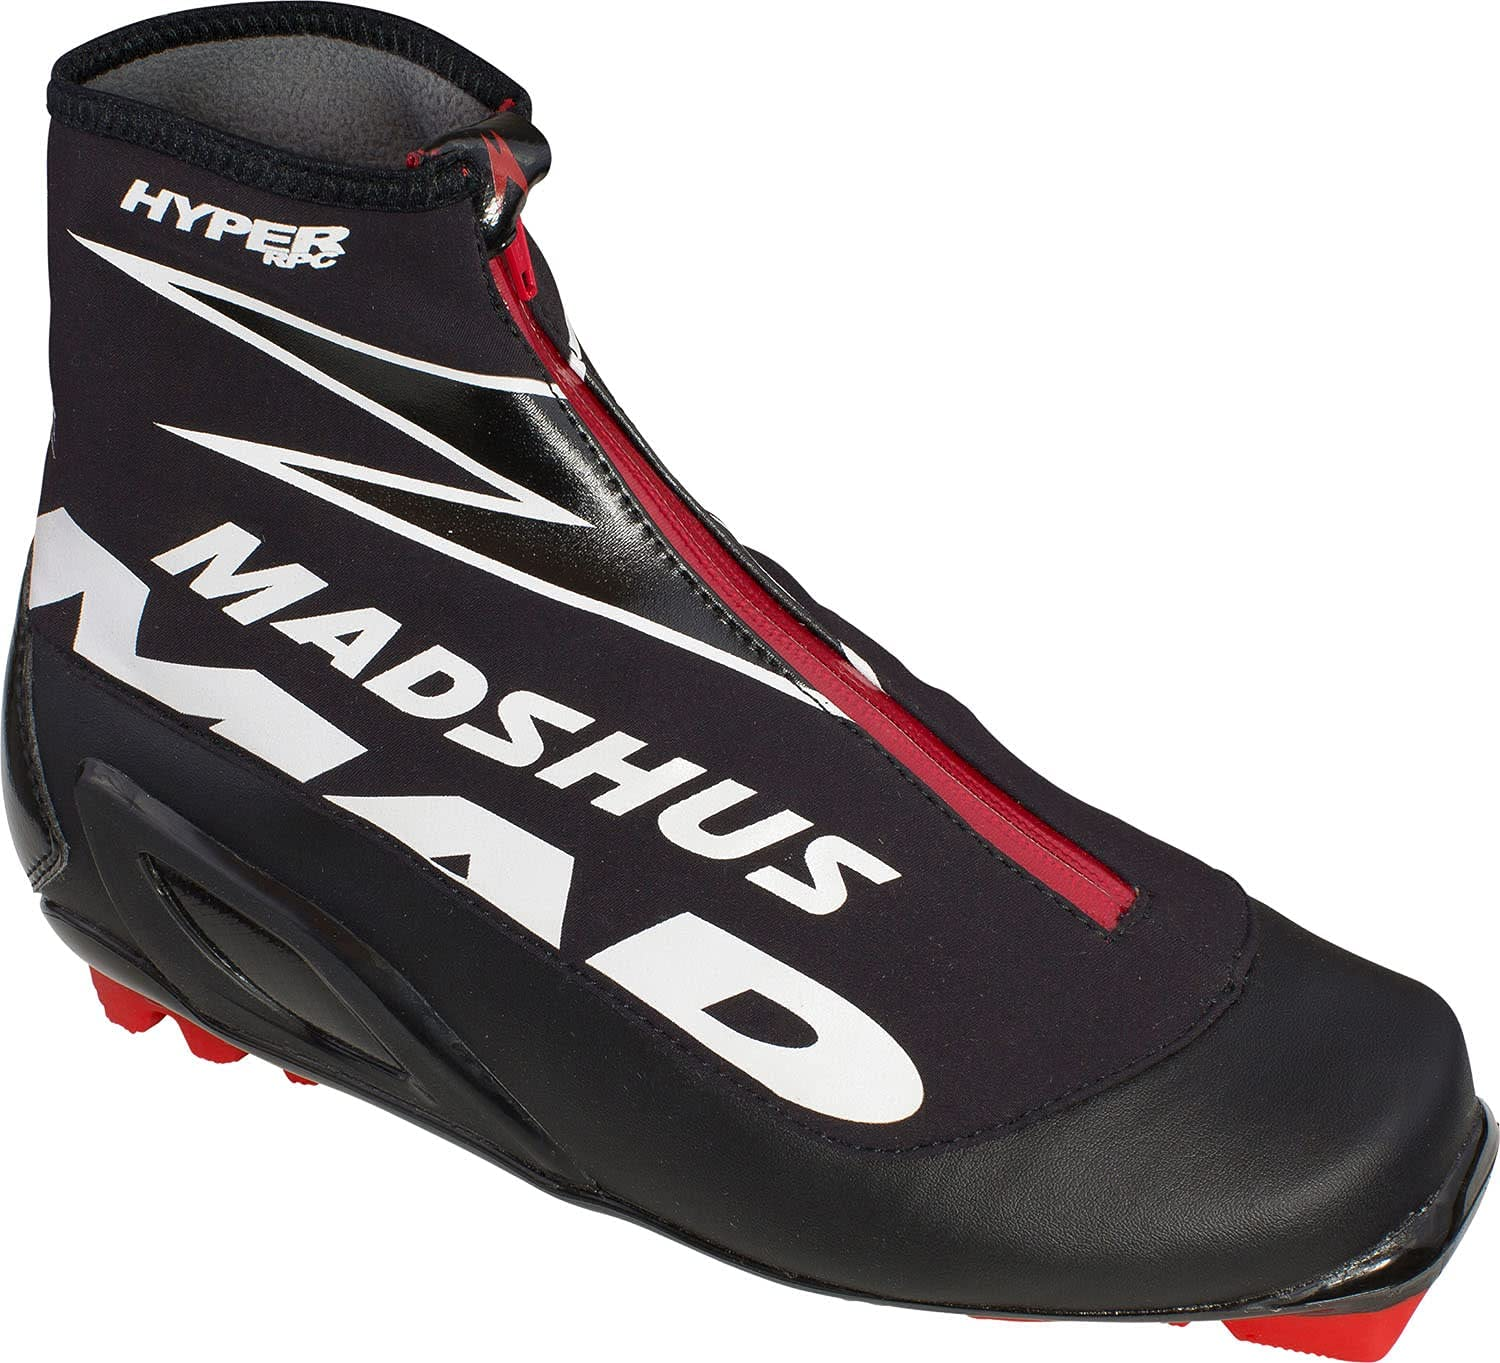 Madshus Hyper RPC Classic Kids Boots Max 51% OFF Year-end annual account XC Ski